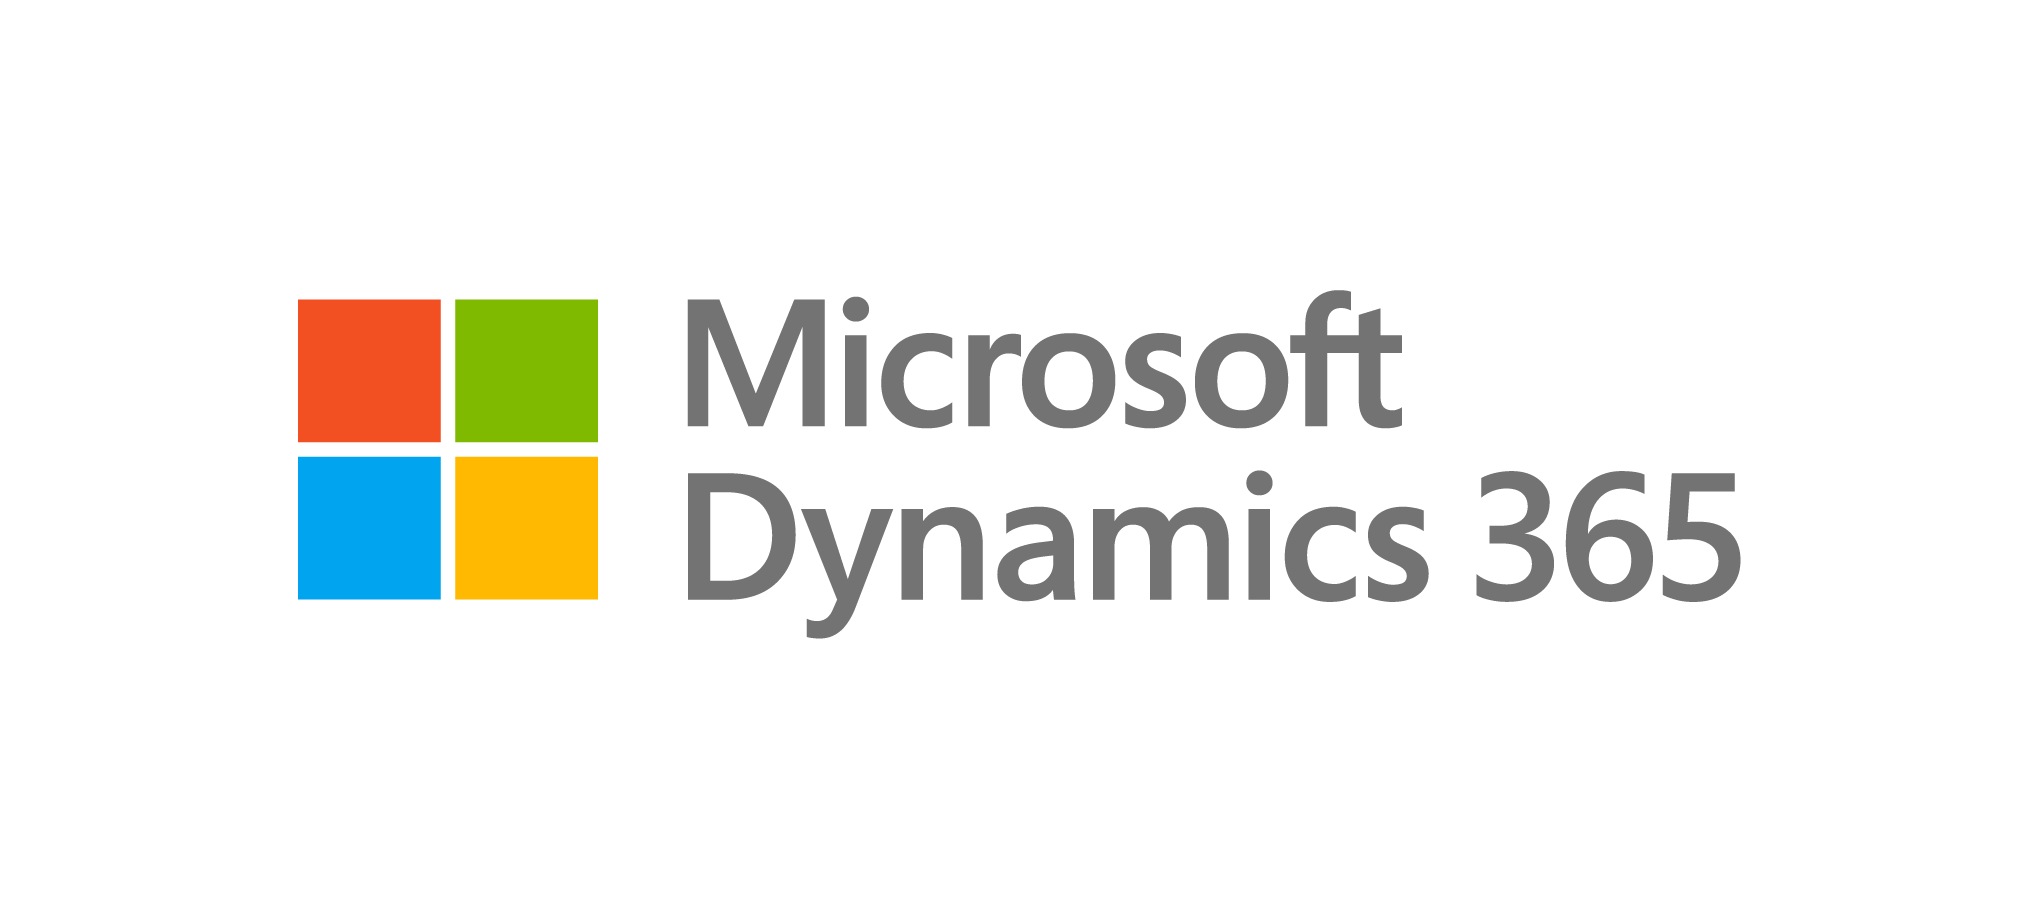 Microsoft Dynamics Stacked Logo with grey text